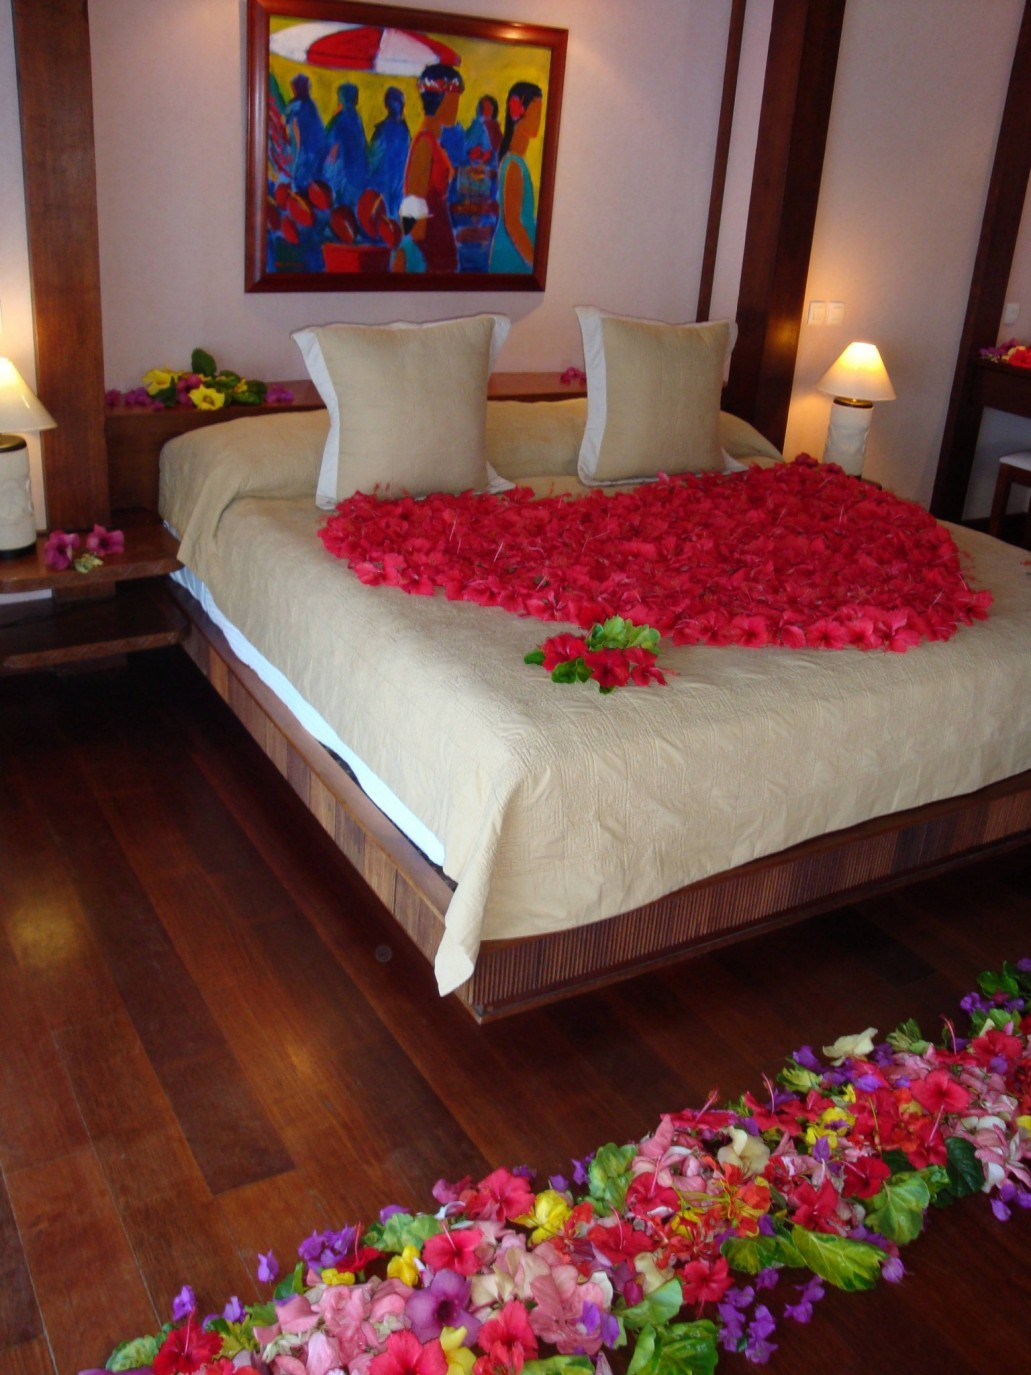 Jasmine Flowers And Red Roses Are Most Preferred With Bouquet Places In  Vases Around The Bed But Any Decoration Idea Can Be Adapted To Make This  Day Full Of ...